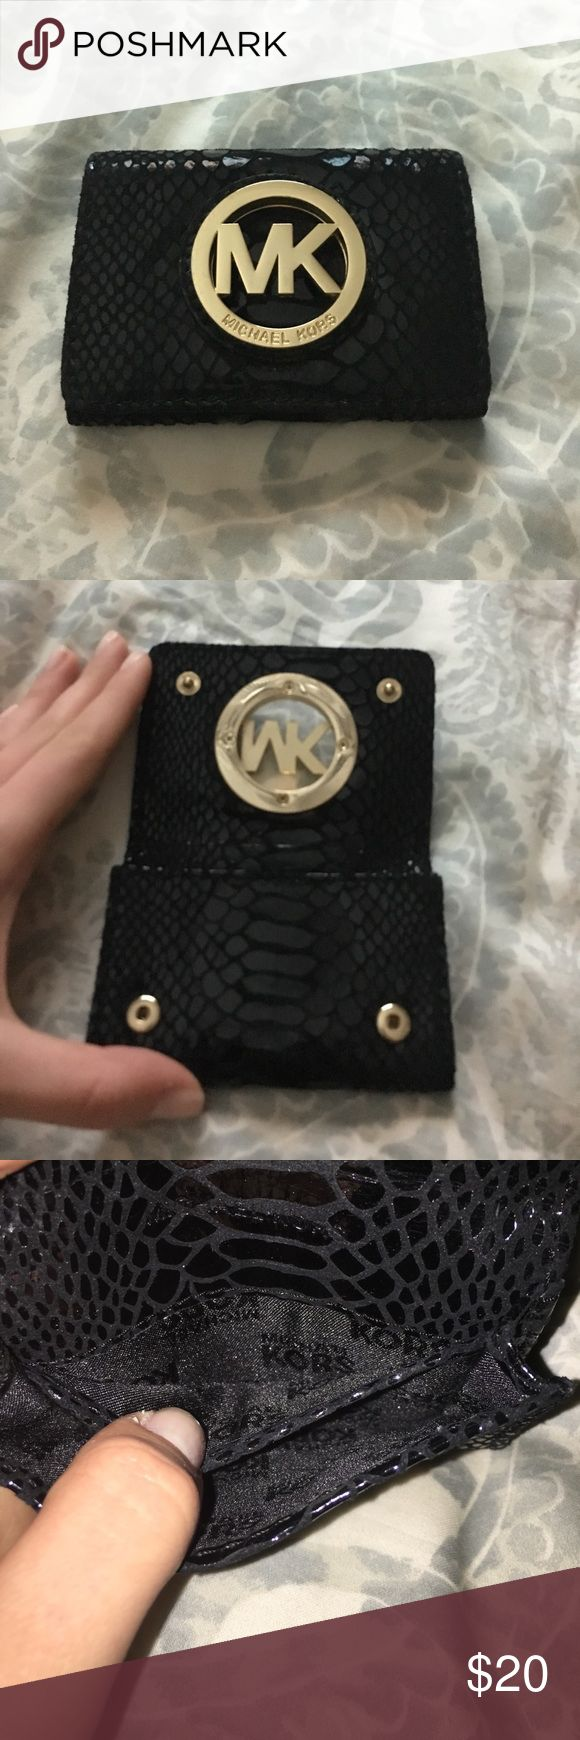 Michael Kors Coin Purse Adorable coin purse that is also able to hold a few cards. Super cute faux snake skin! Small bit of marring on the back showin in last pic. Very minimal. Michael Kors Bags Wallets